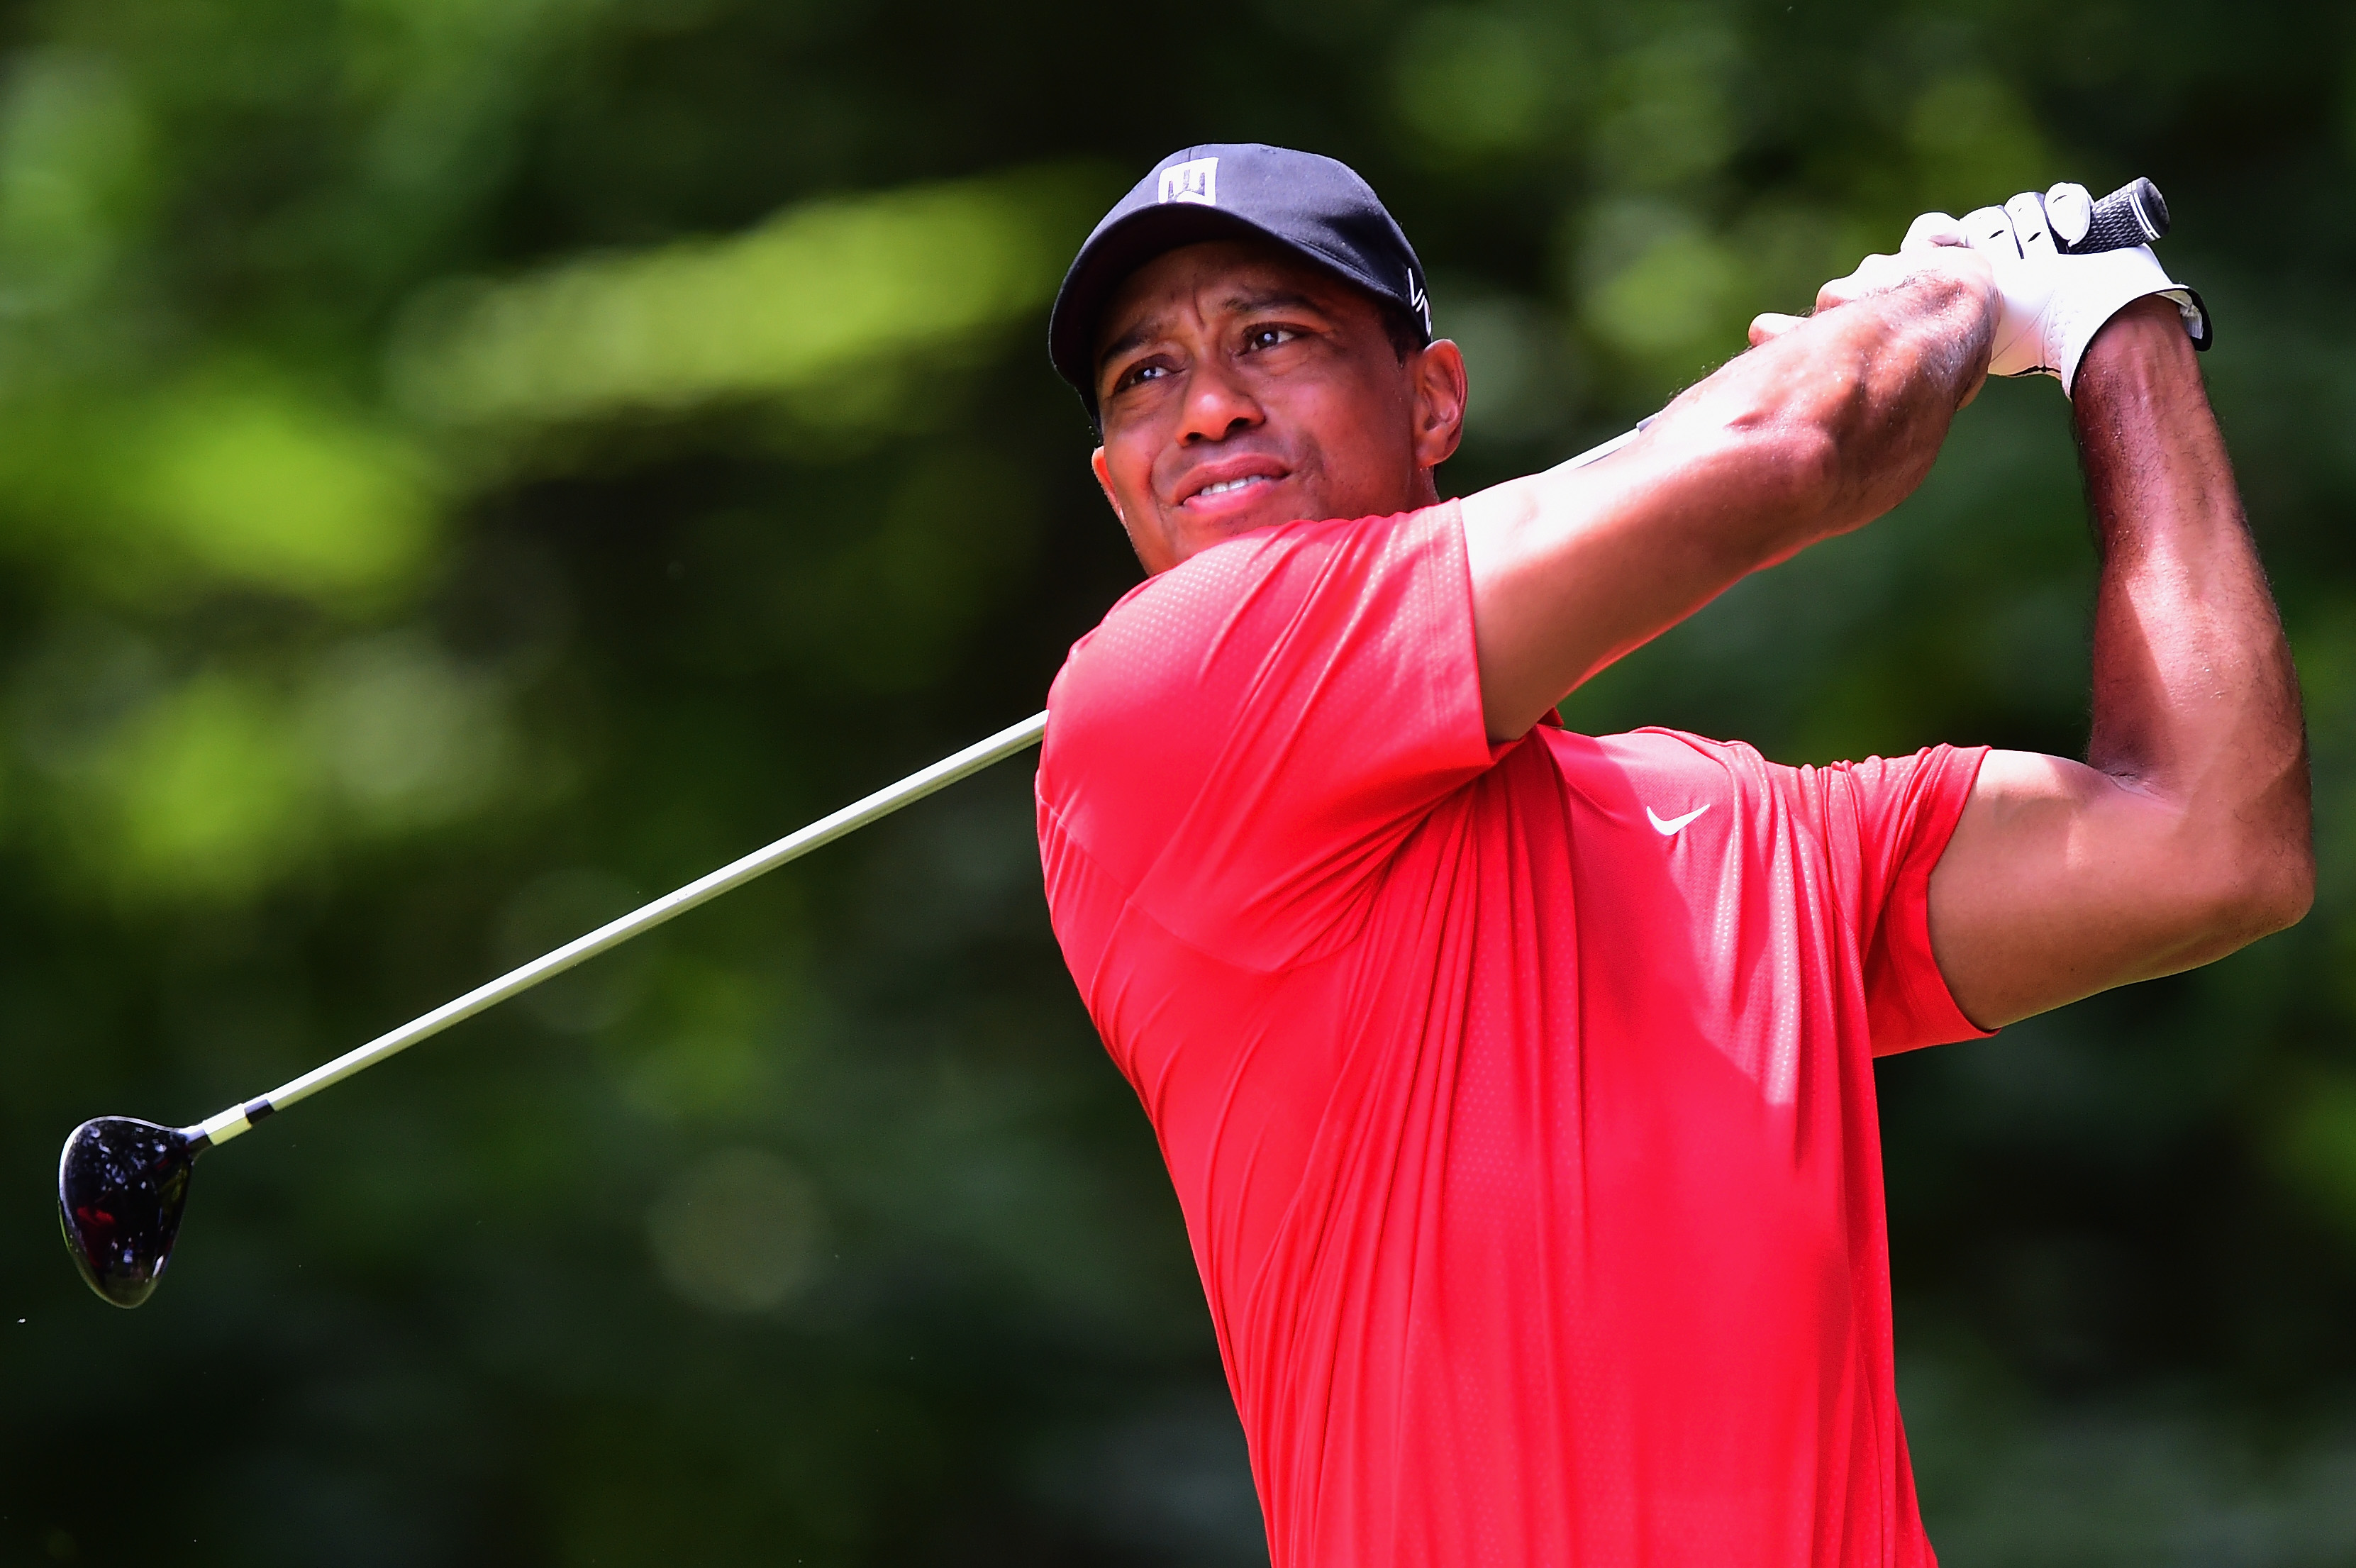 Tiger Woods tees off on the second hole during the final round of the Wyndham Championship at Sedgefield Country Club on August 23, 2015 in Greensboro, North Carolina.